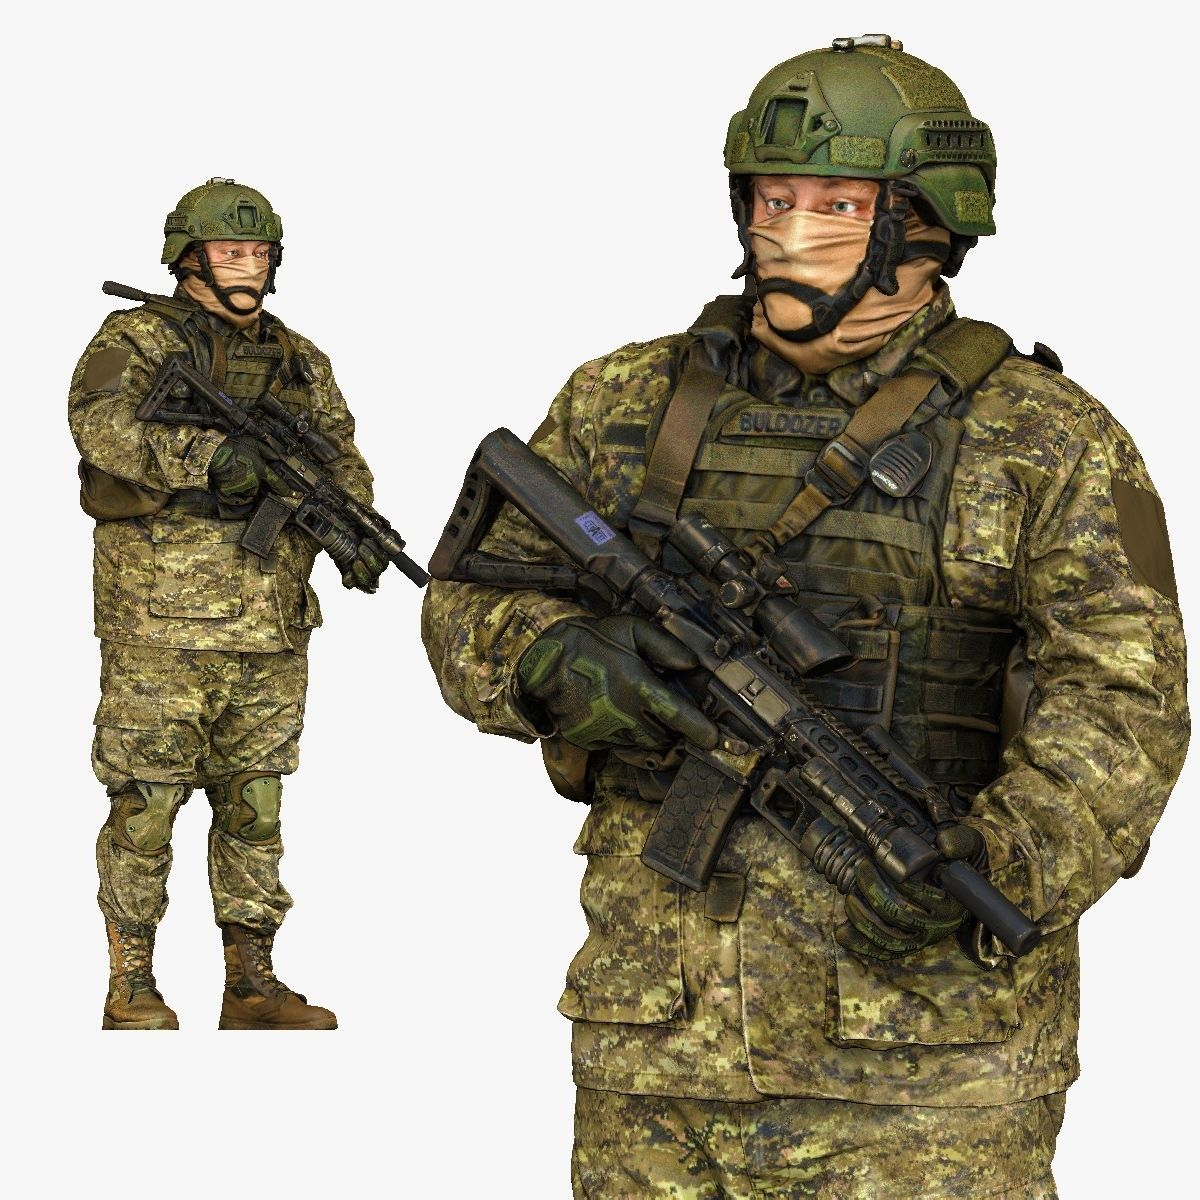 modern soldier in camouflage honeybadger 001149 3D Print Ready